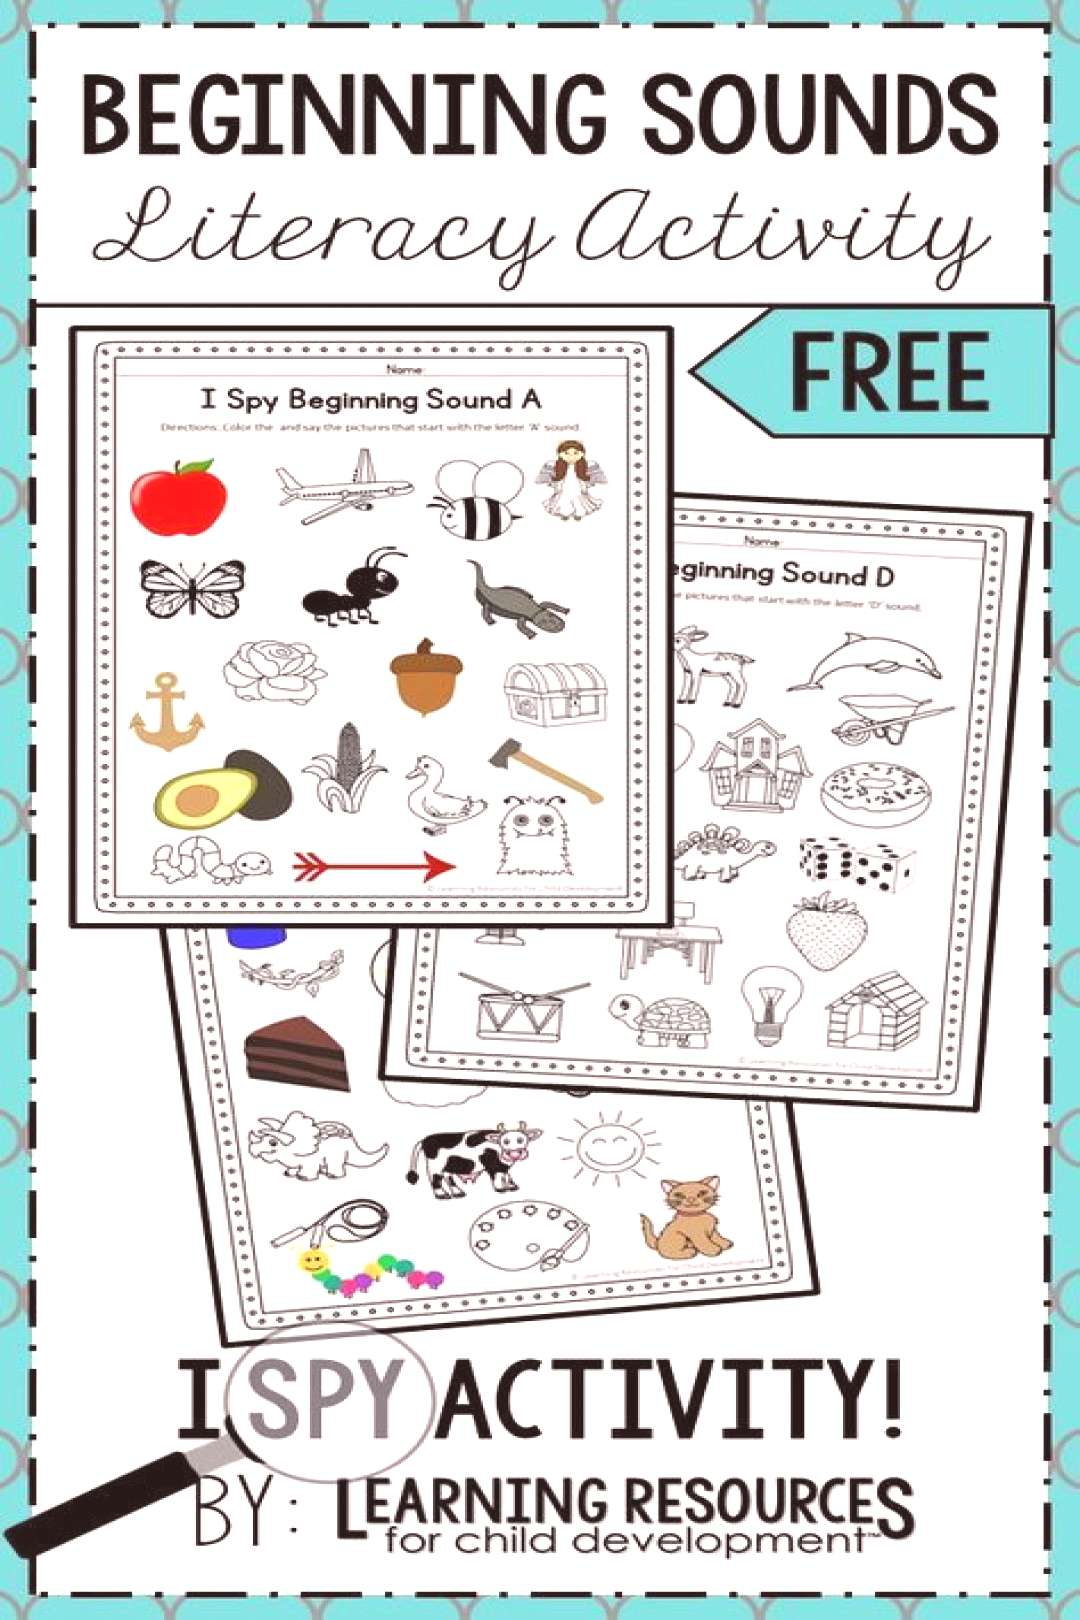 I Spy Beginning Sounds Phonics / Initial Sounds Activity! This activity is so much fun to learning